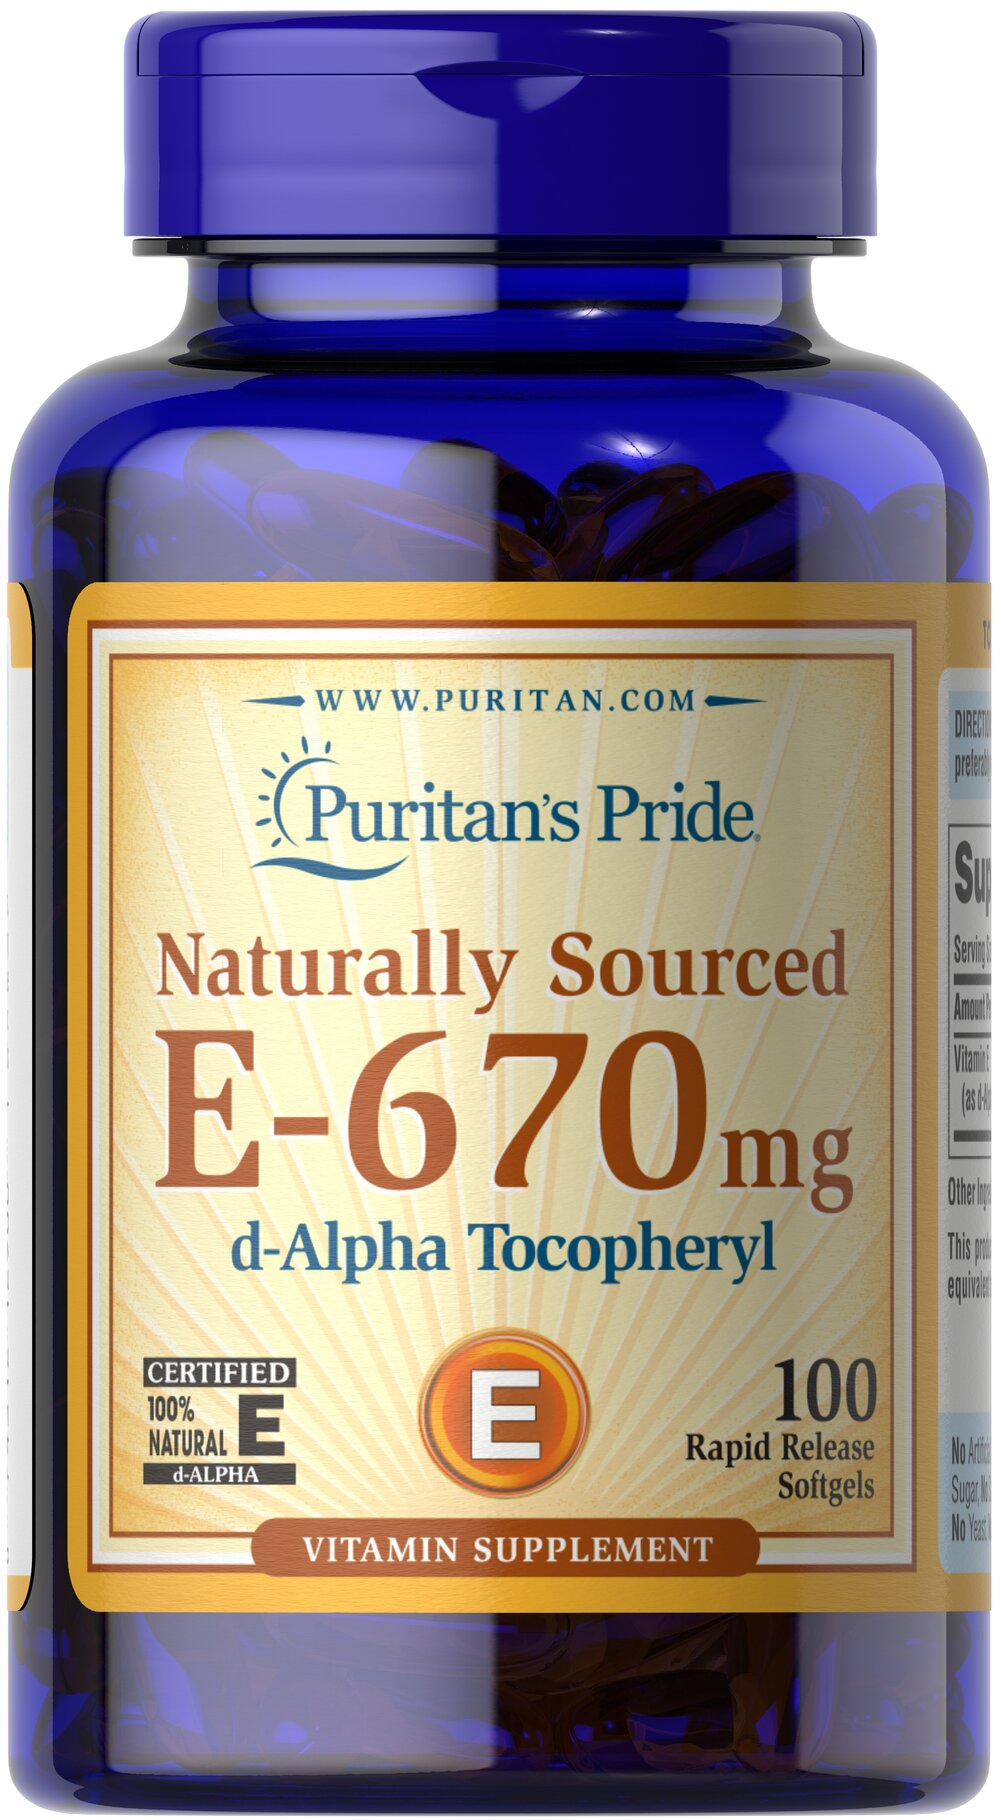 Vitamin E-100% 1000 IU Natural <p><strong>Vitamin E</strong> is a potent antioxidant that helps fight free radicals.** Studies have shown that oxidative stress caused by free radicals may contribute to the premature aging of cells.** Vitamin E also promotes immune function and helps support cardiovascular health.** Our Vitamin E is 100% natural and comes in a convenient to use softgel.</p> 100 Softgels 1000 IU $33.73